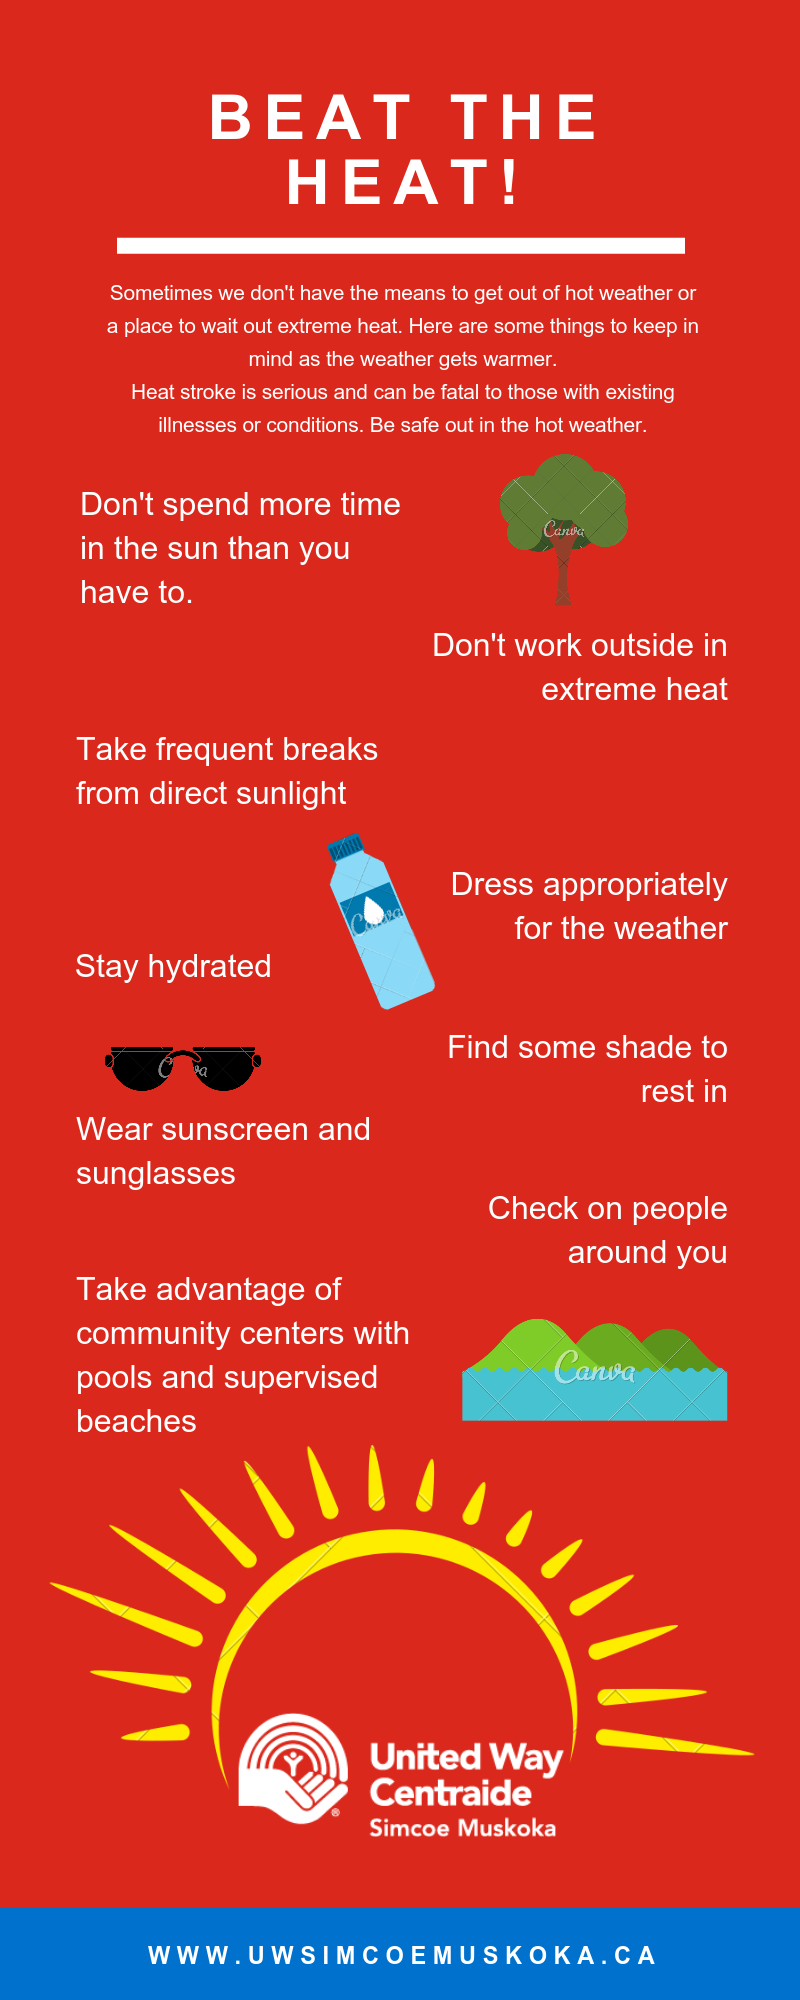 Beat the Heat! Sometimes we don't have the means to get out of hot weather or a place to wait out extreme heat. Here are some things to keep in mind as the weather gets warmer. Heat stroke is serious and can be fatal to those with existing illnesses or conditions. Be safe out in the hot weather. • Don't spend time outside if you don't have to. • Don't work outside in extreme heat. Remember it's your right to refuse unsafe work. • Take breaks from direct sunlight, even if you're lounging in the heat. • Dress appropriately for the weather. • Stay hydrated. Your body sweats to keep you cool, but high humidity stops that sweat from evaporating. • If you can't get inside, stay in the shade. • Wear sunscreen and sunglasses. The sun can cause skin cancer and permanent eyesight damage. • Check on the people around you. During times of extreme heat, make sure your friends, family and neighbours are safe and doing what they can to beat the heat. • Take advantage of community centers with pools and supervised beaches.